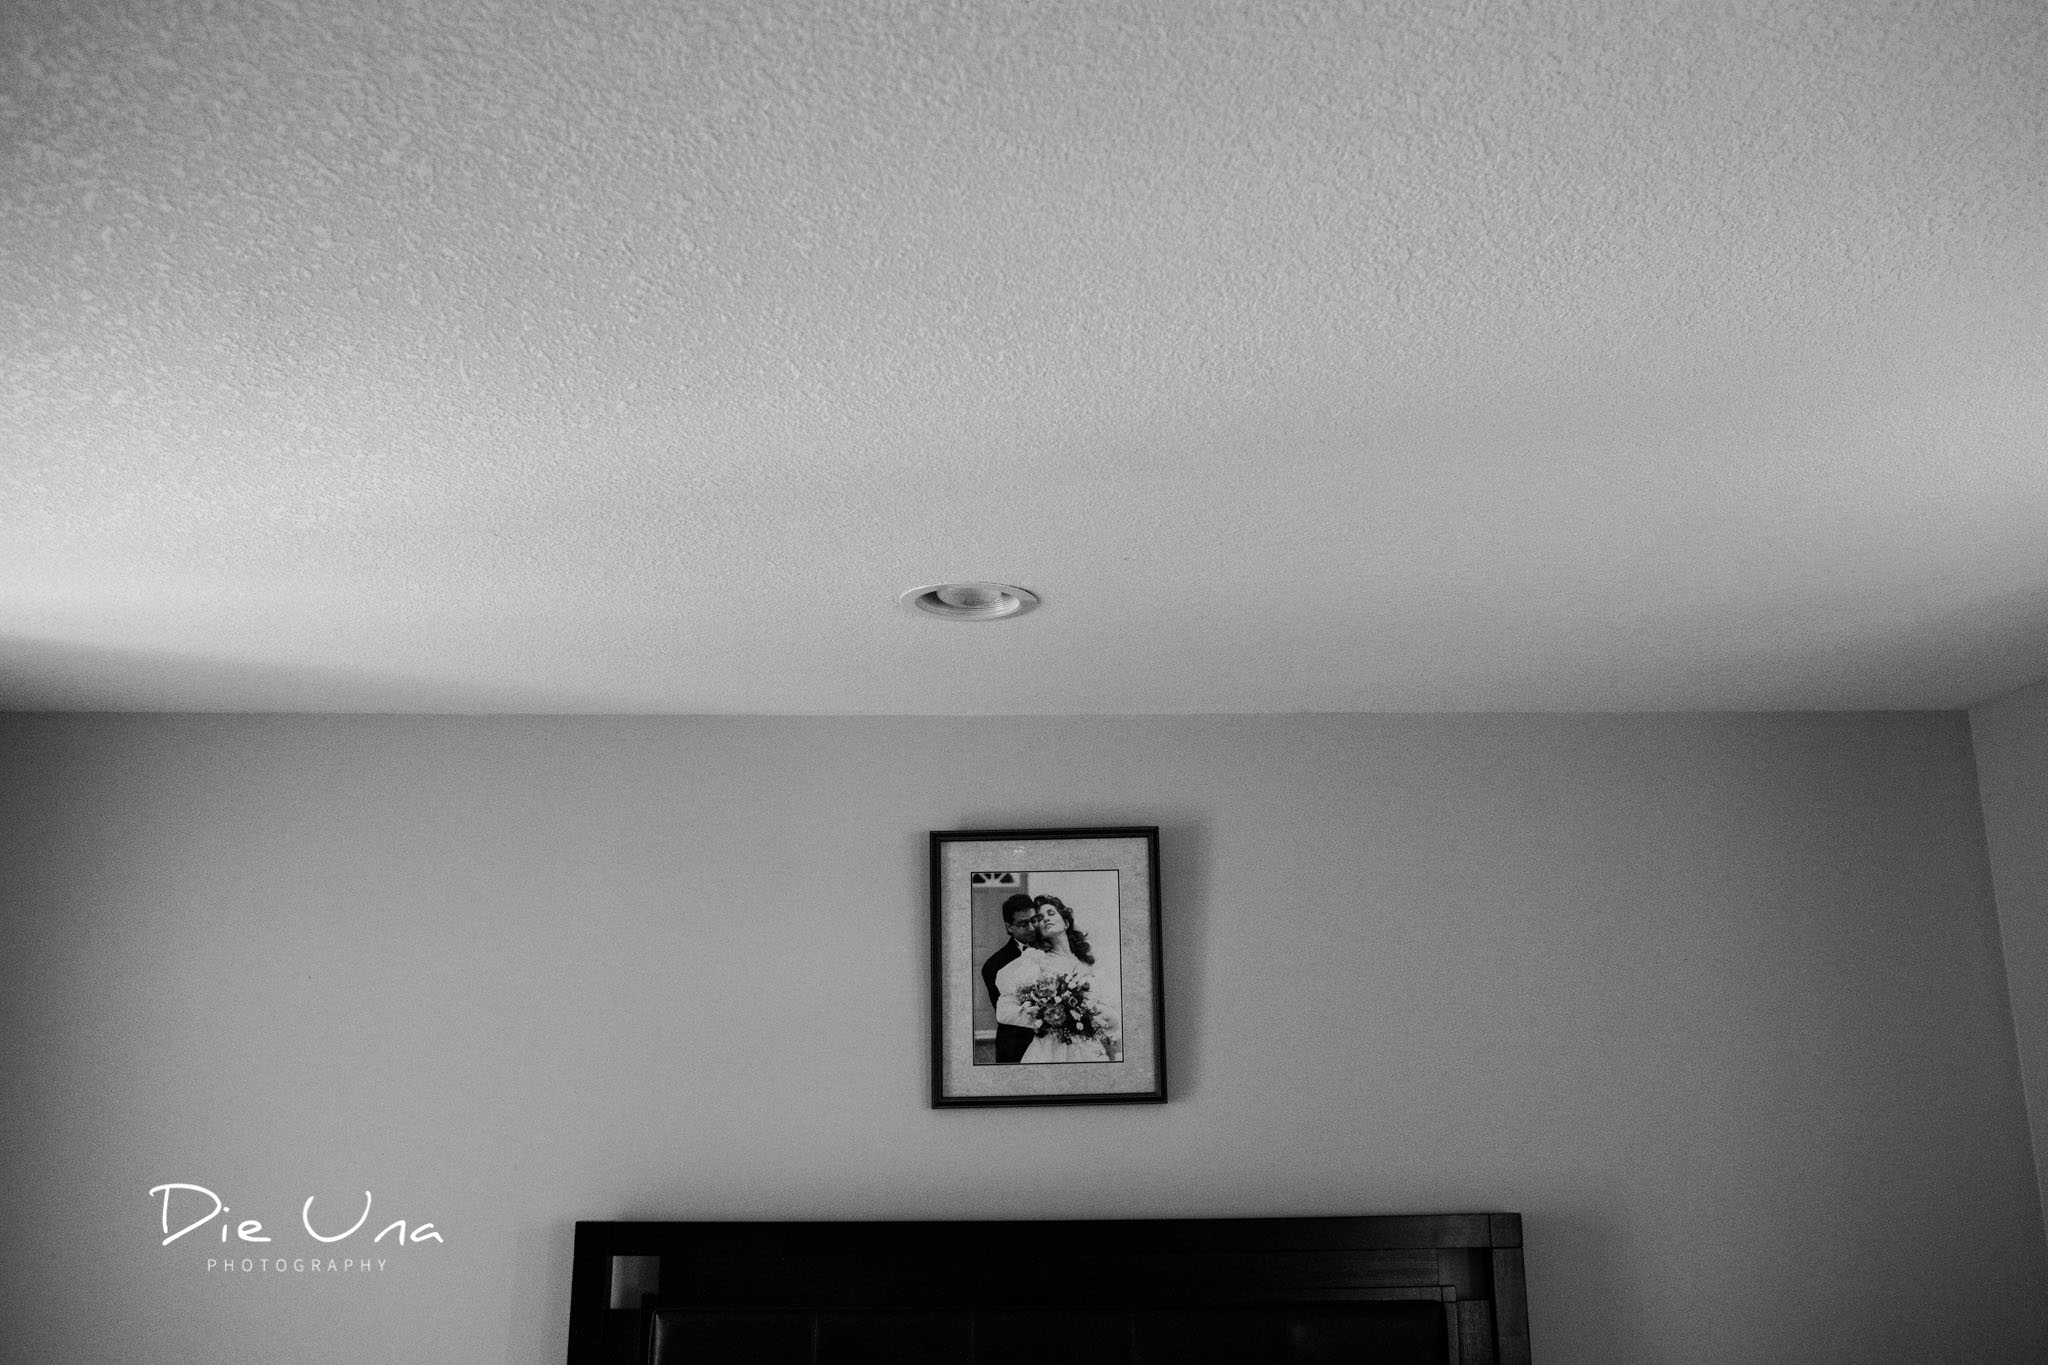 Old wedding portrait hanging in bride getting ready space black and white wedding photography.jpg